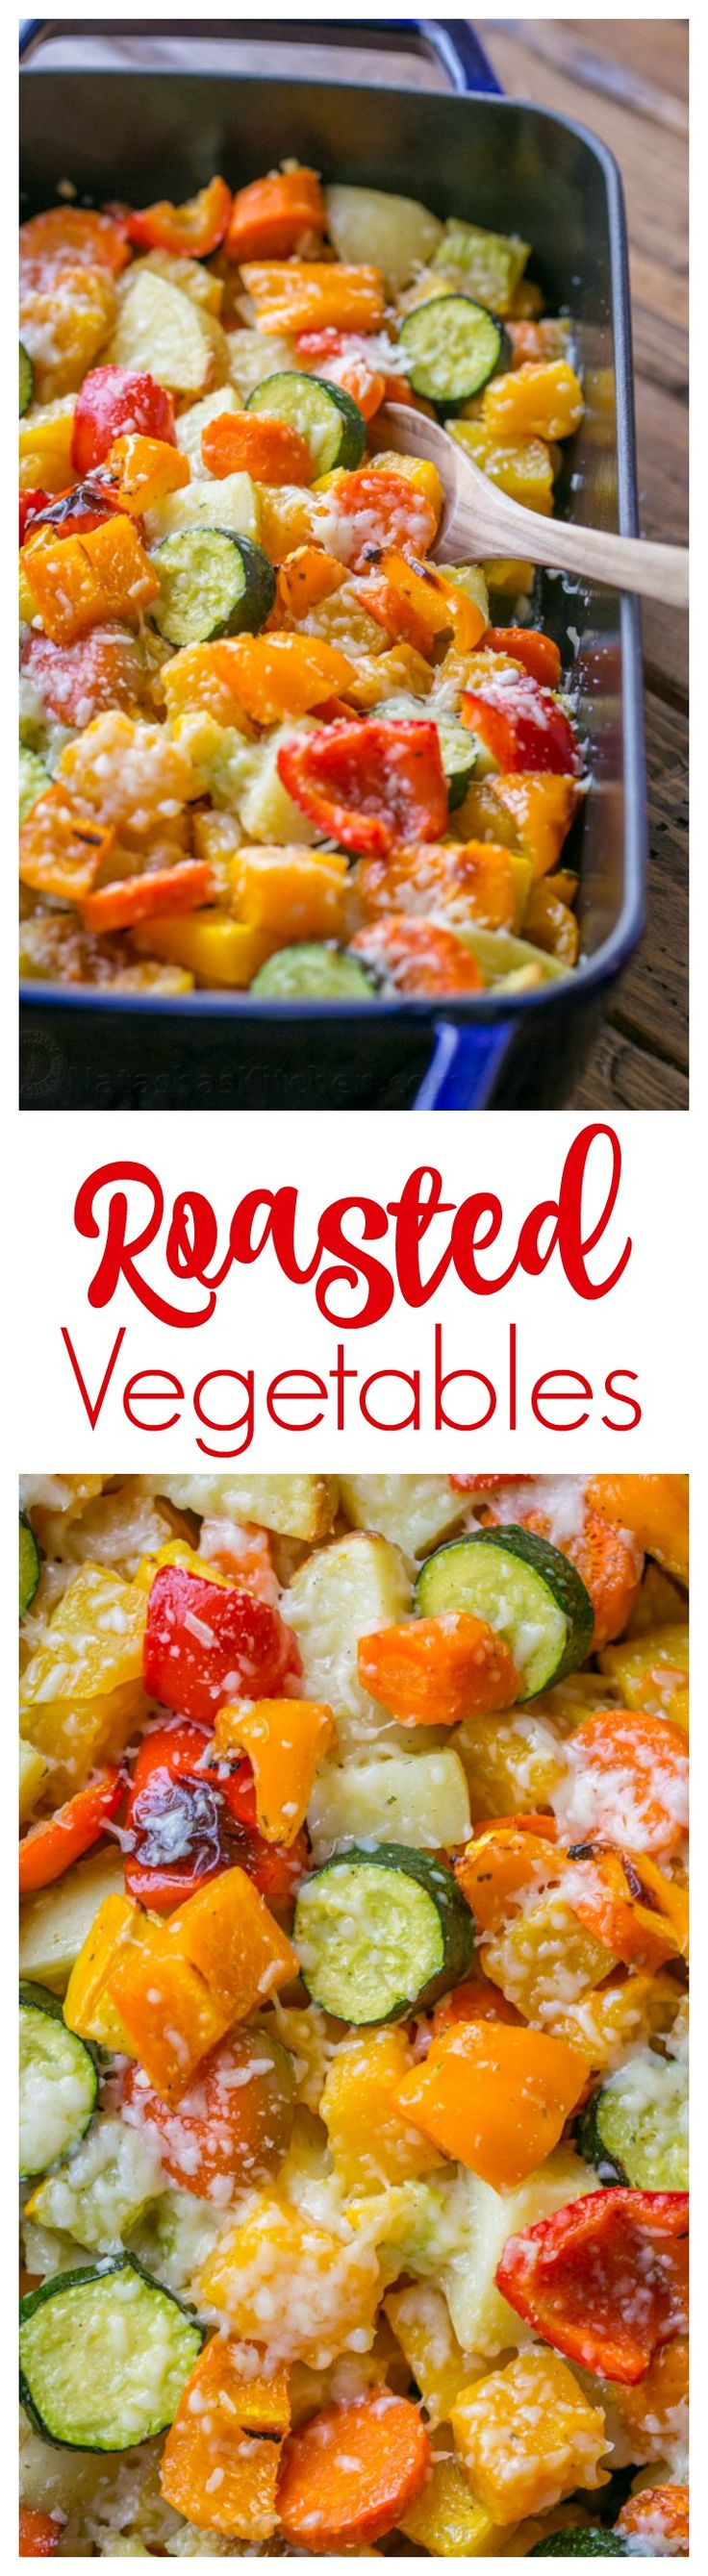 Roasted Vegetables uses the best of Fall veggies: butternut squash, potatoes, zucc